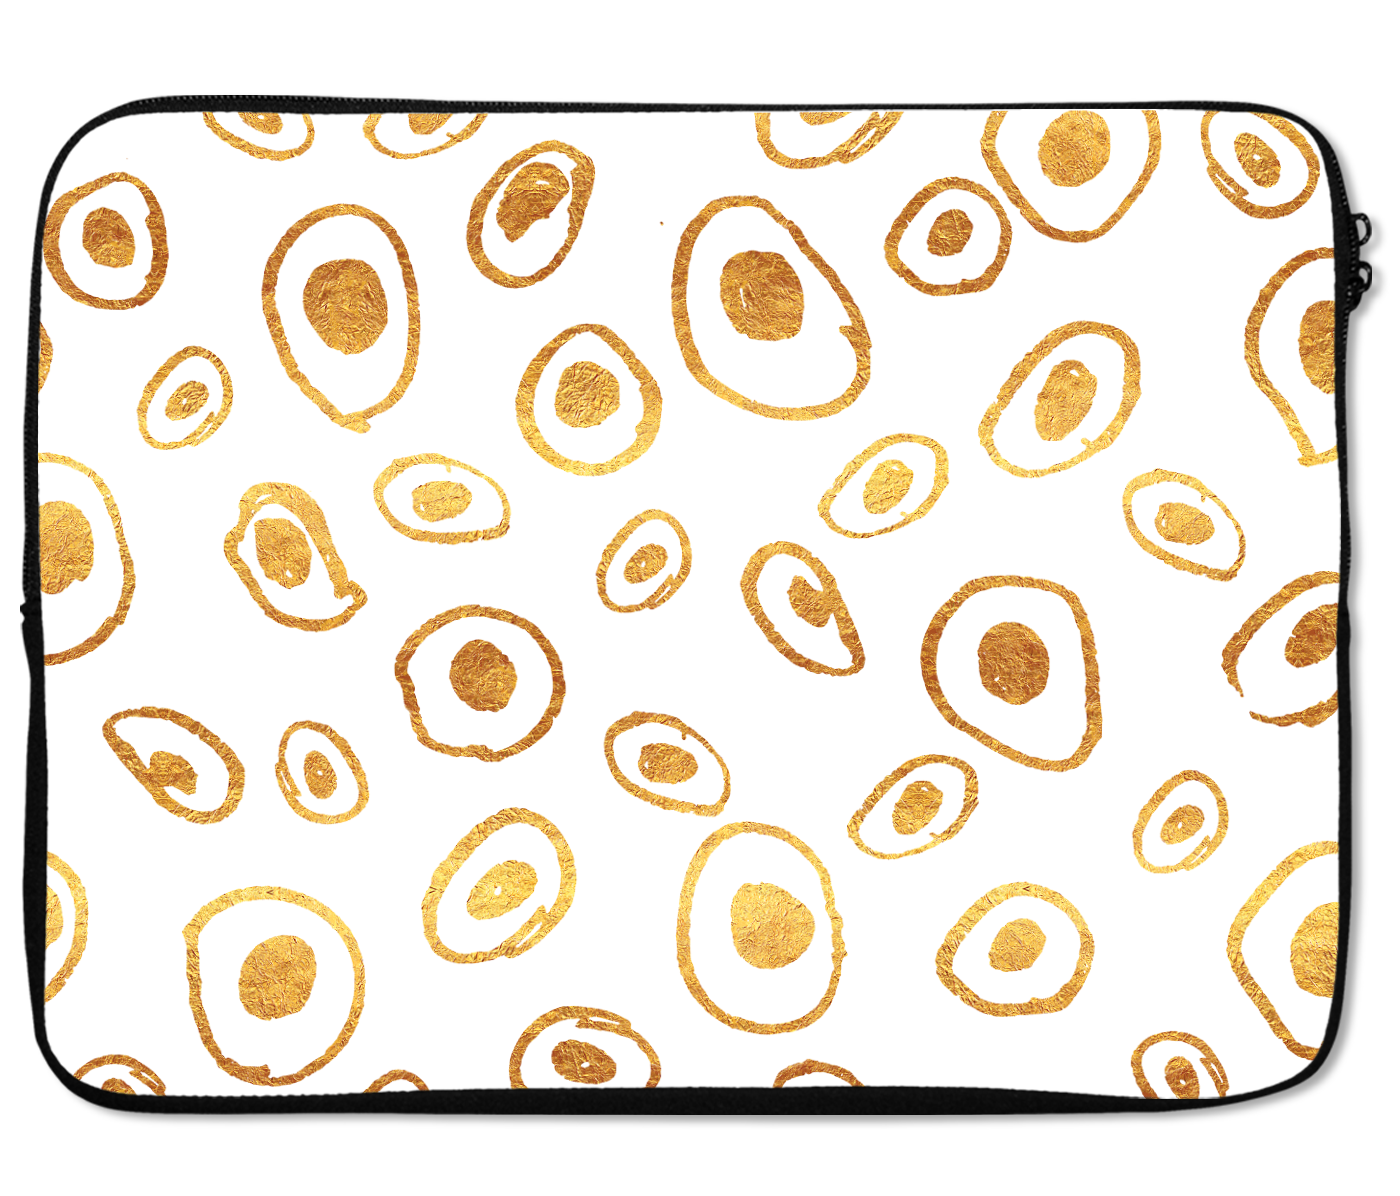 Laptops Tablet Sleeves Golden Eggs Pattern Premium Quality Neoprene Laptop Protection